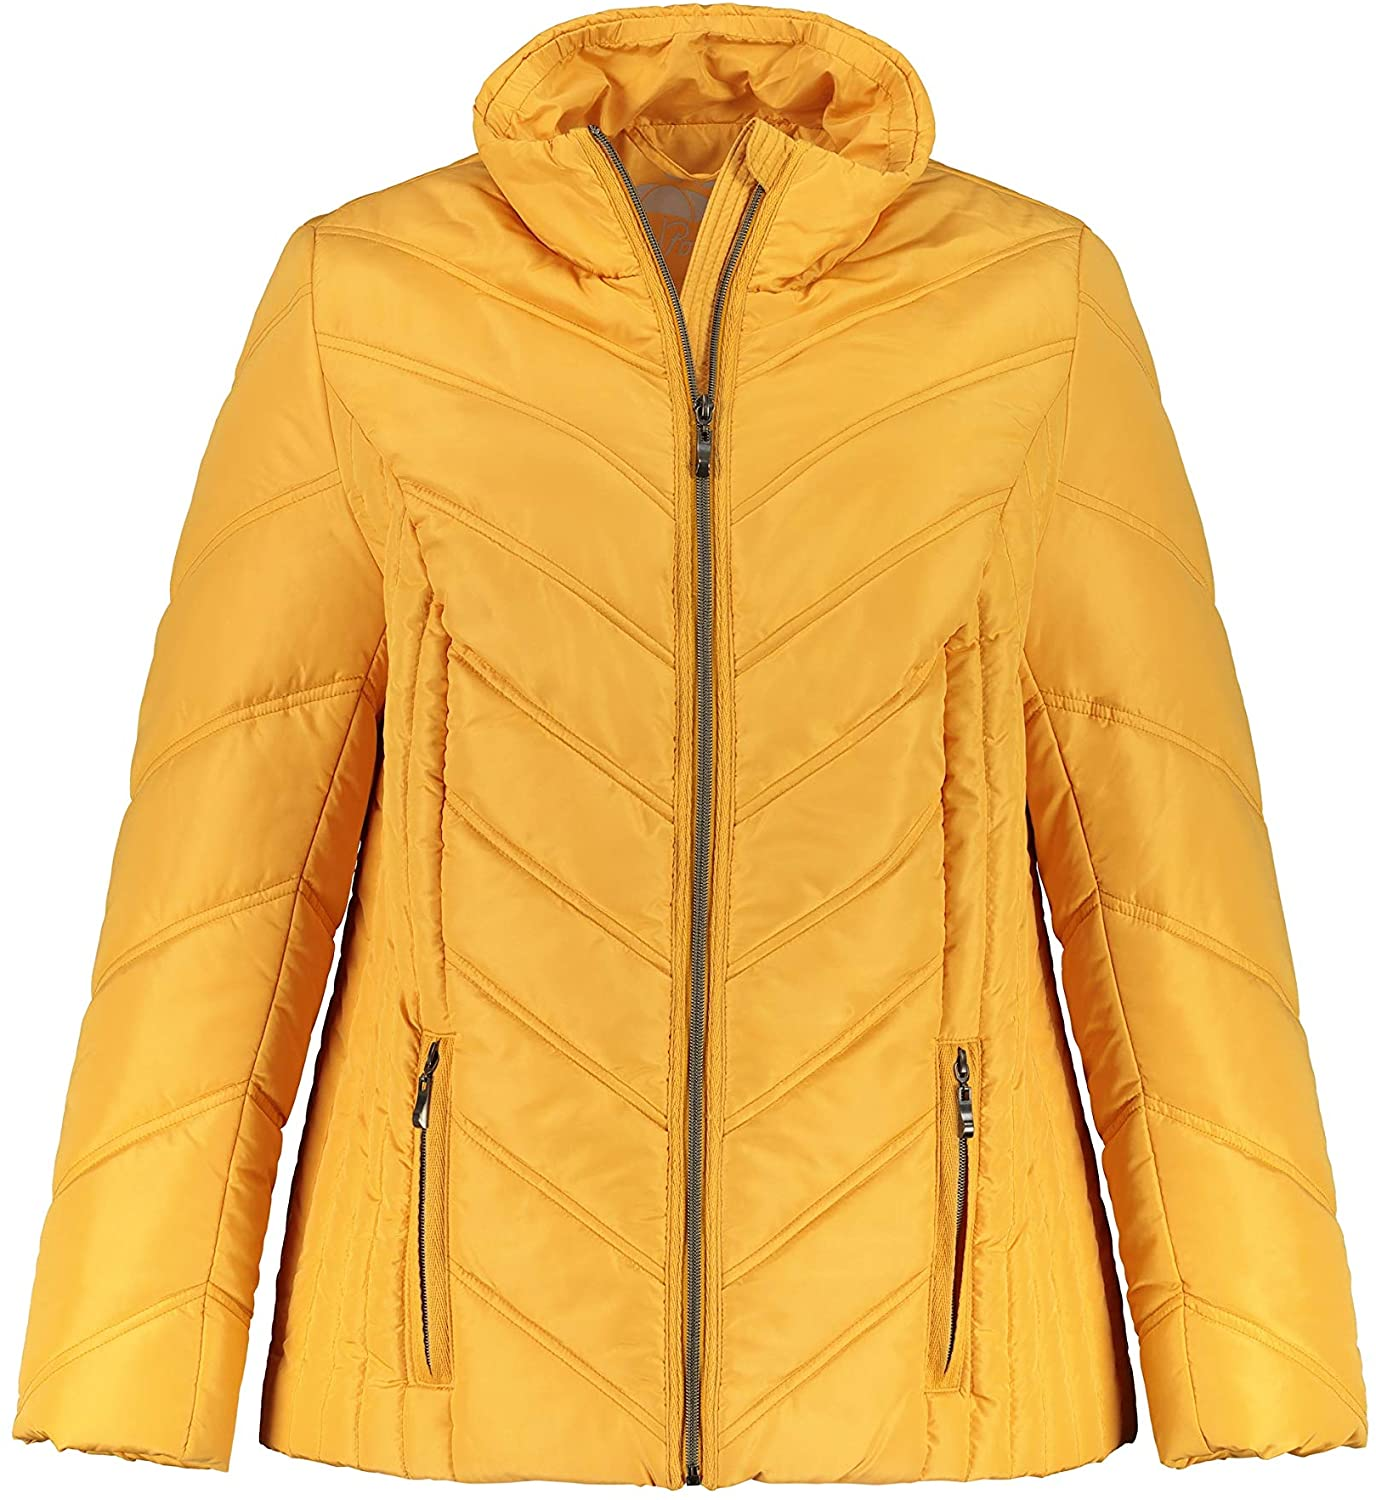 Ulla Popken Womens Plus Size Eco Bionic-Finish Quilted Jacket 749489